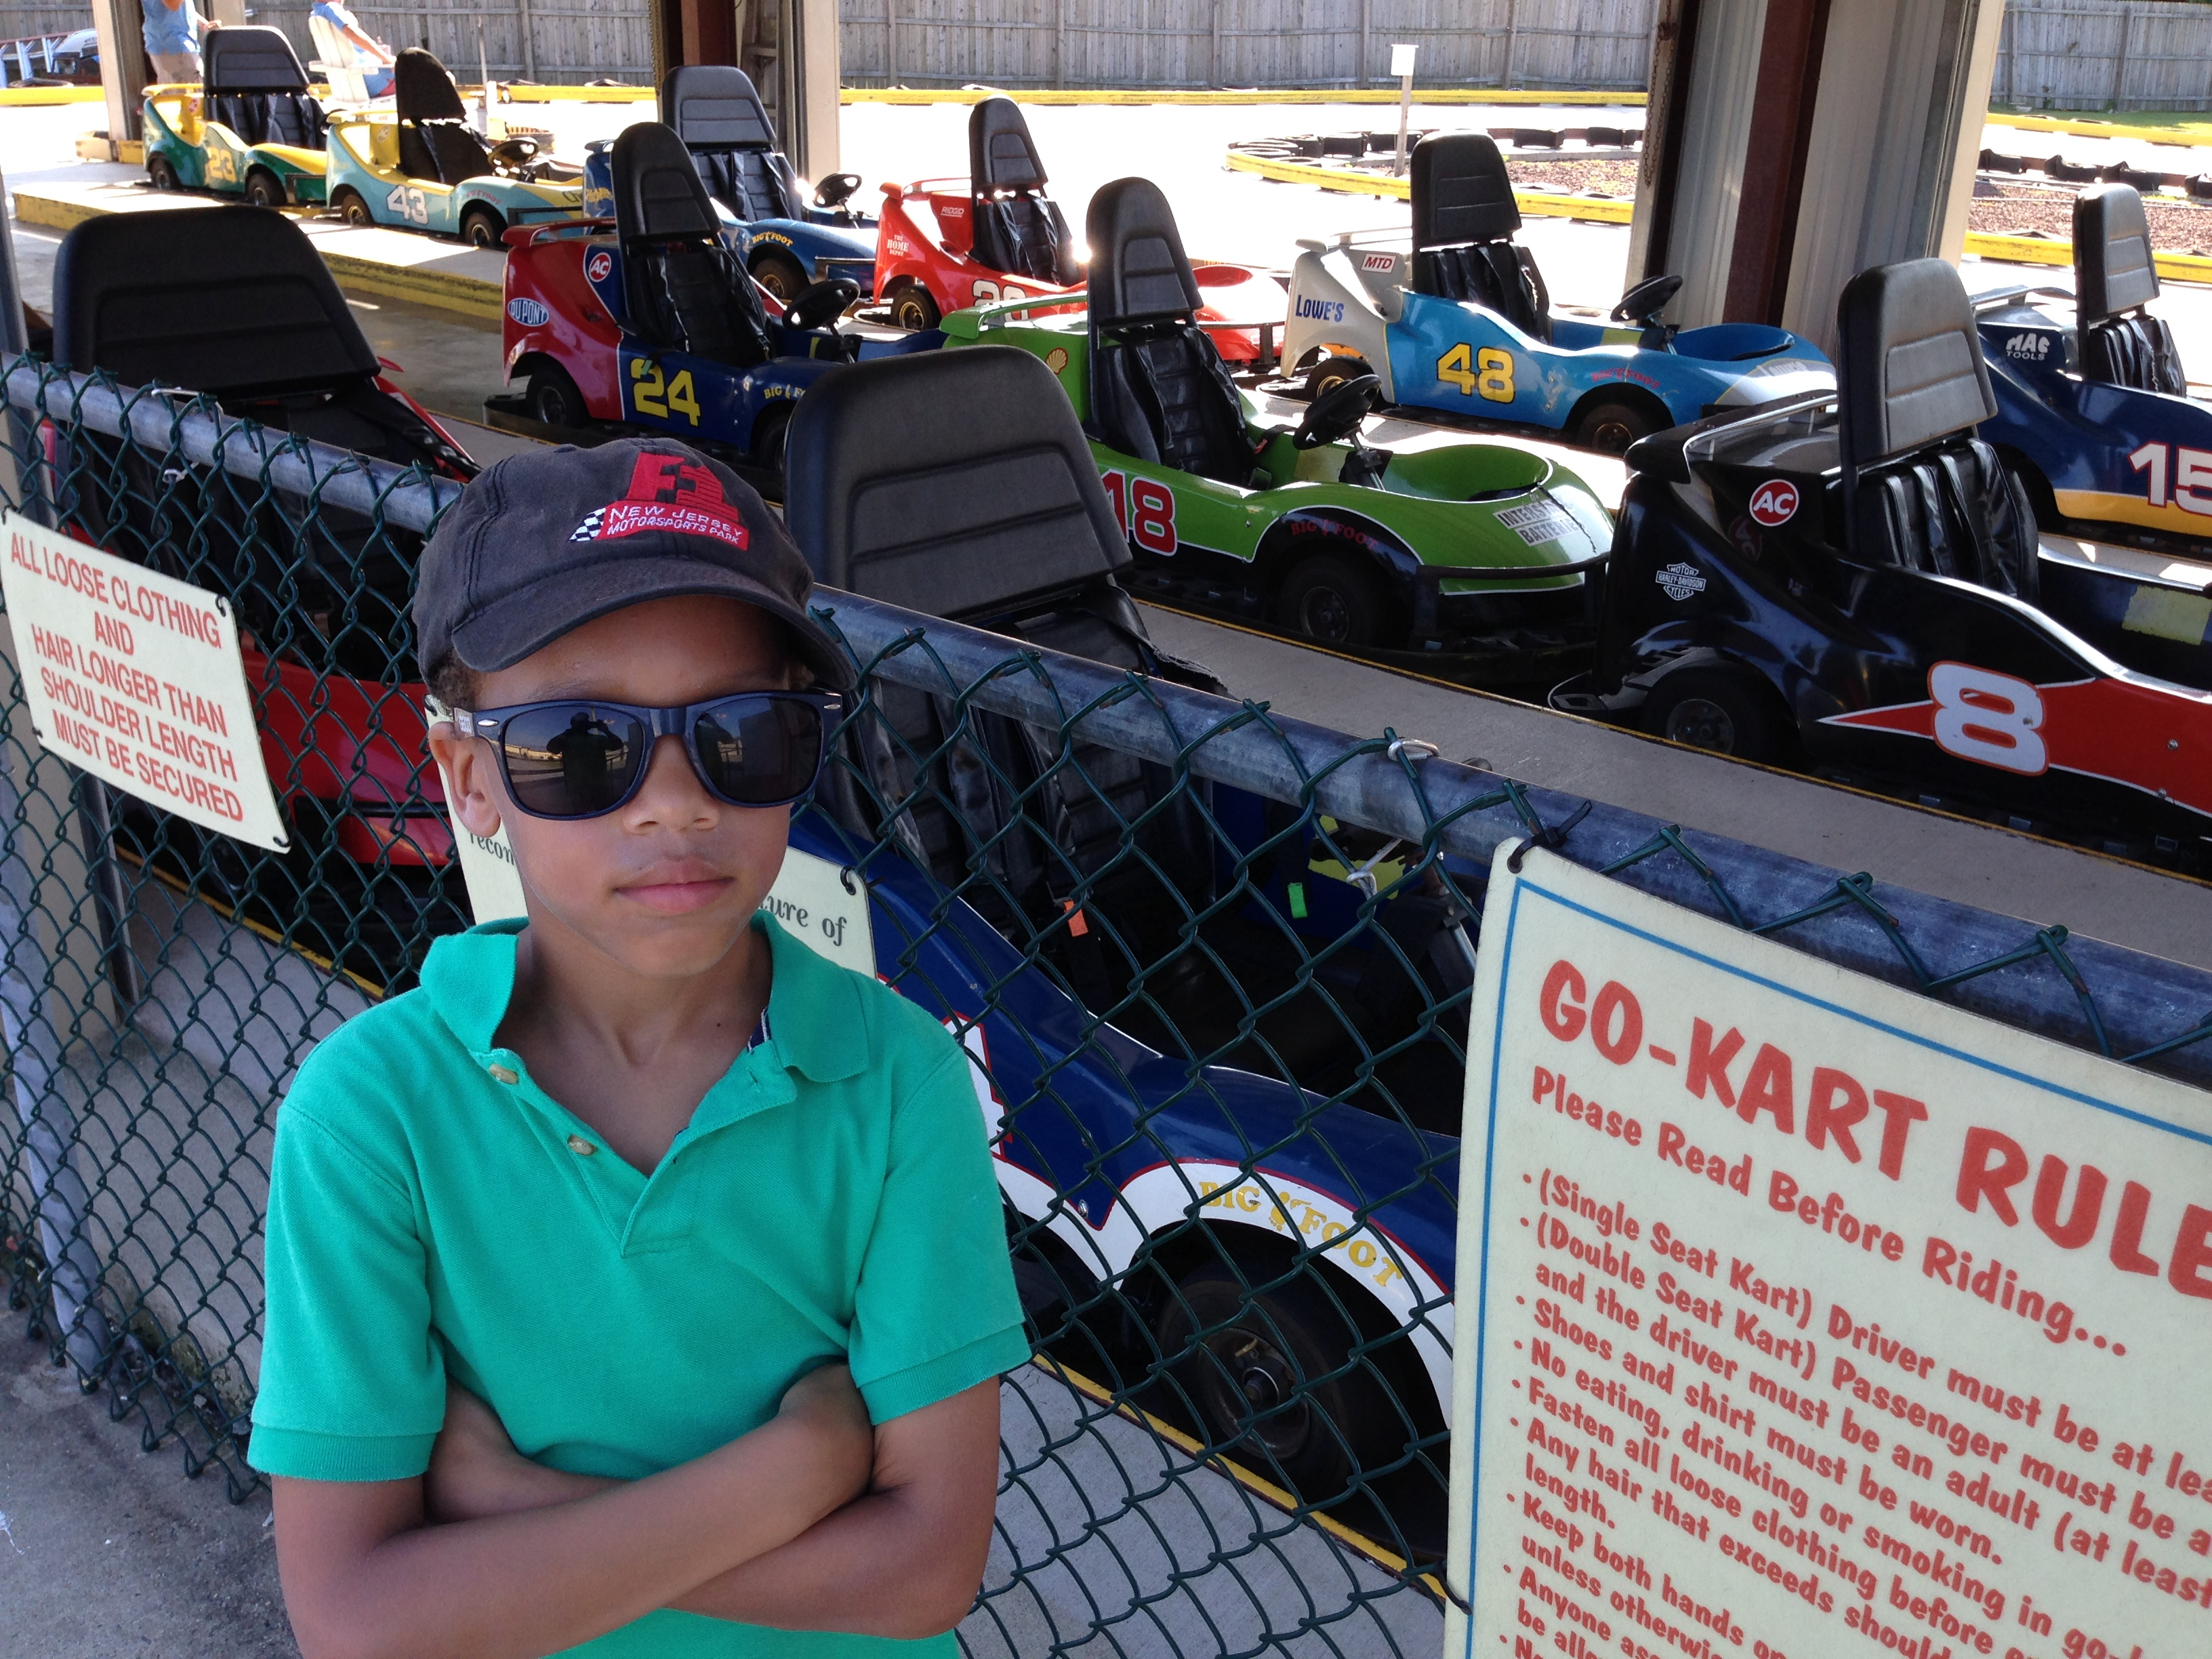 What happens when you ask a Cadet kart racer to drive an Amusement Park Go Kart while on vacation?